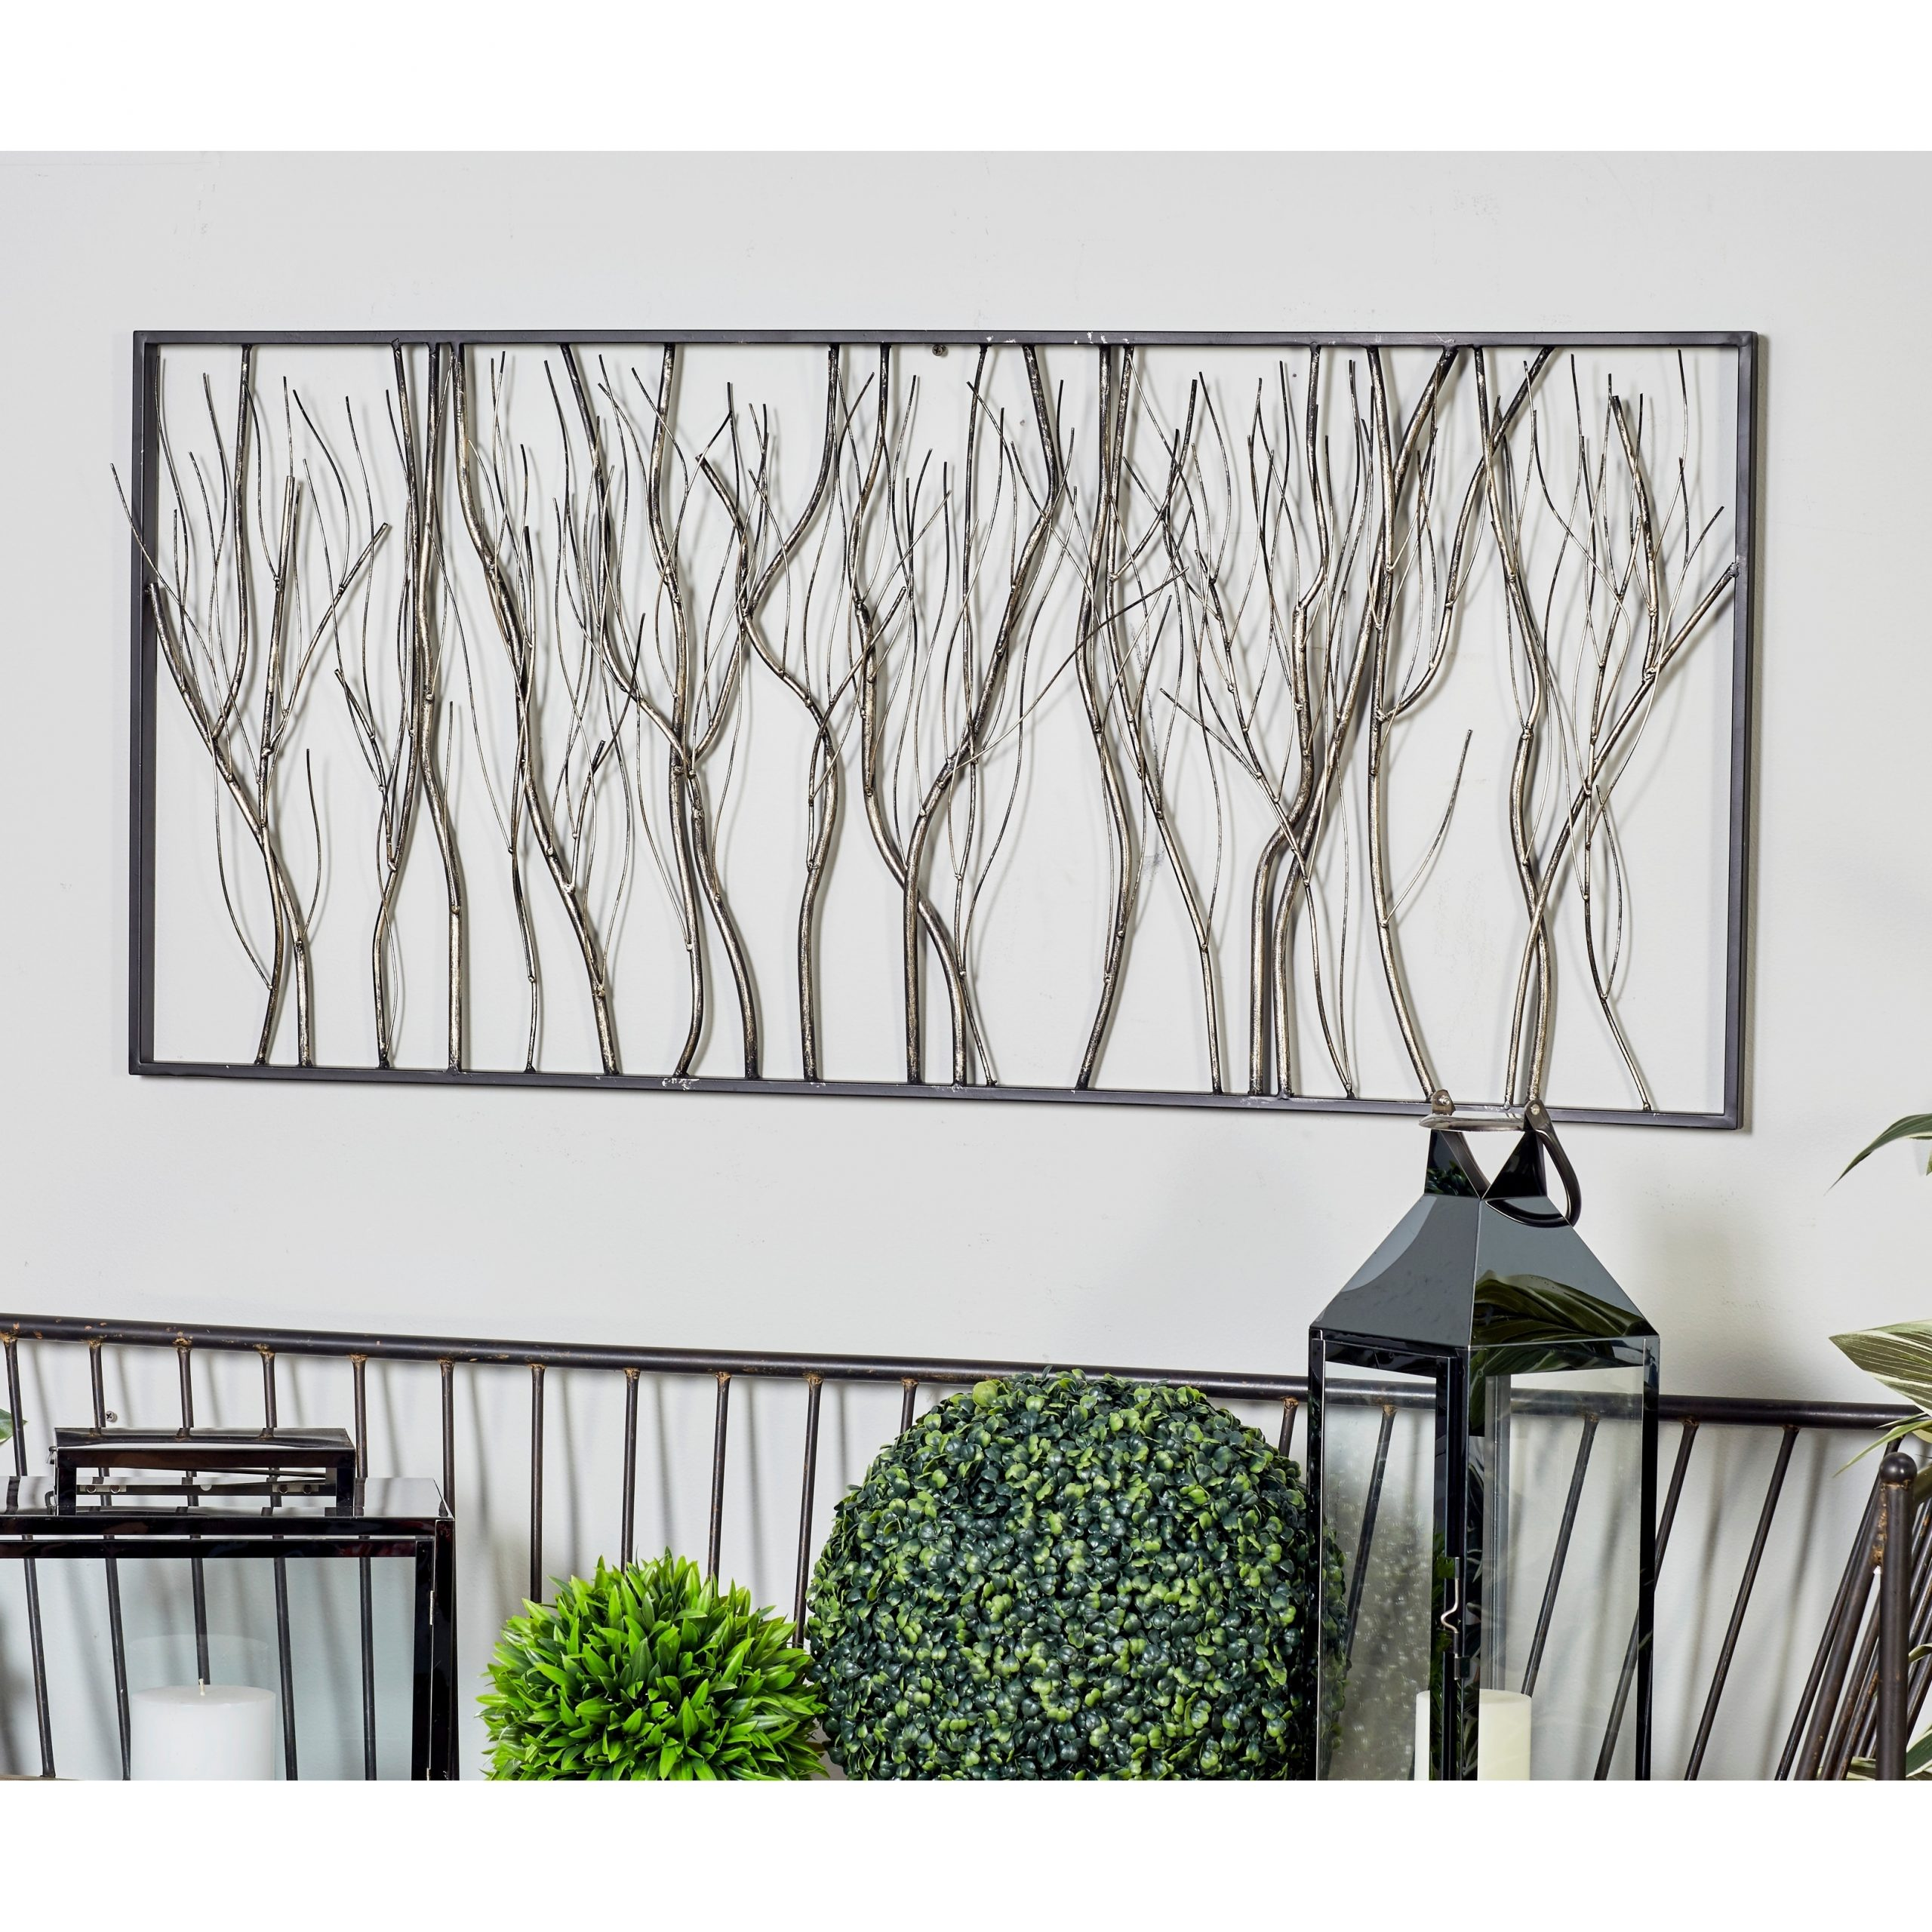 Most Popular 2 Piece Starburst Wall Décor Set By Wrought Studio Pertaining To Natural 22 X 48 Inch Iron Twigs And Branches Wall Decorstudio (View 12 of 20)